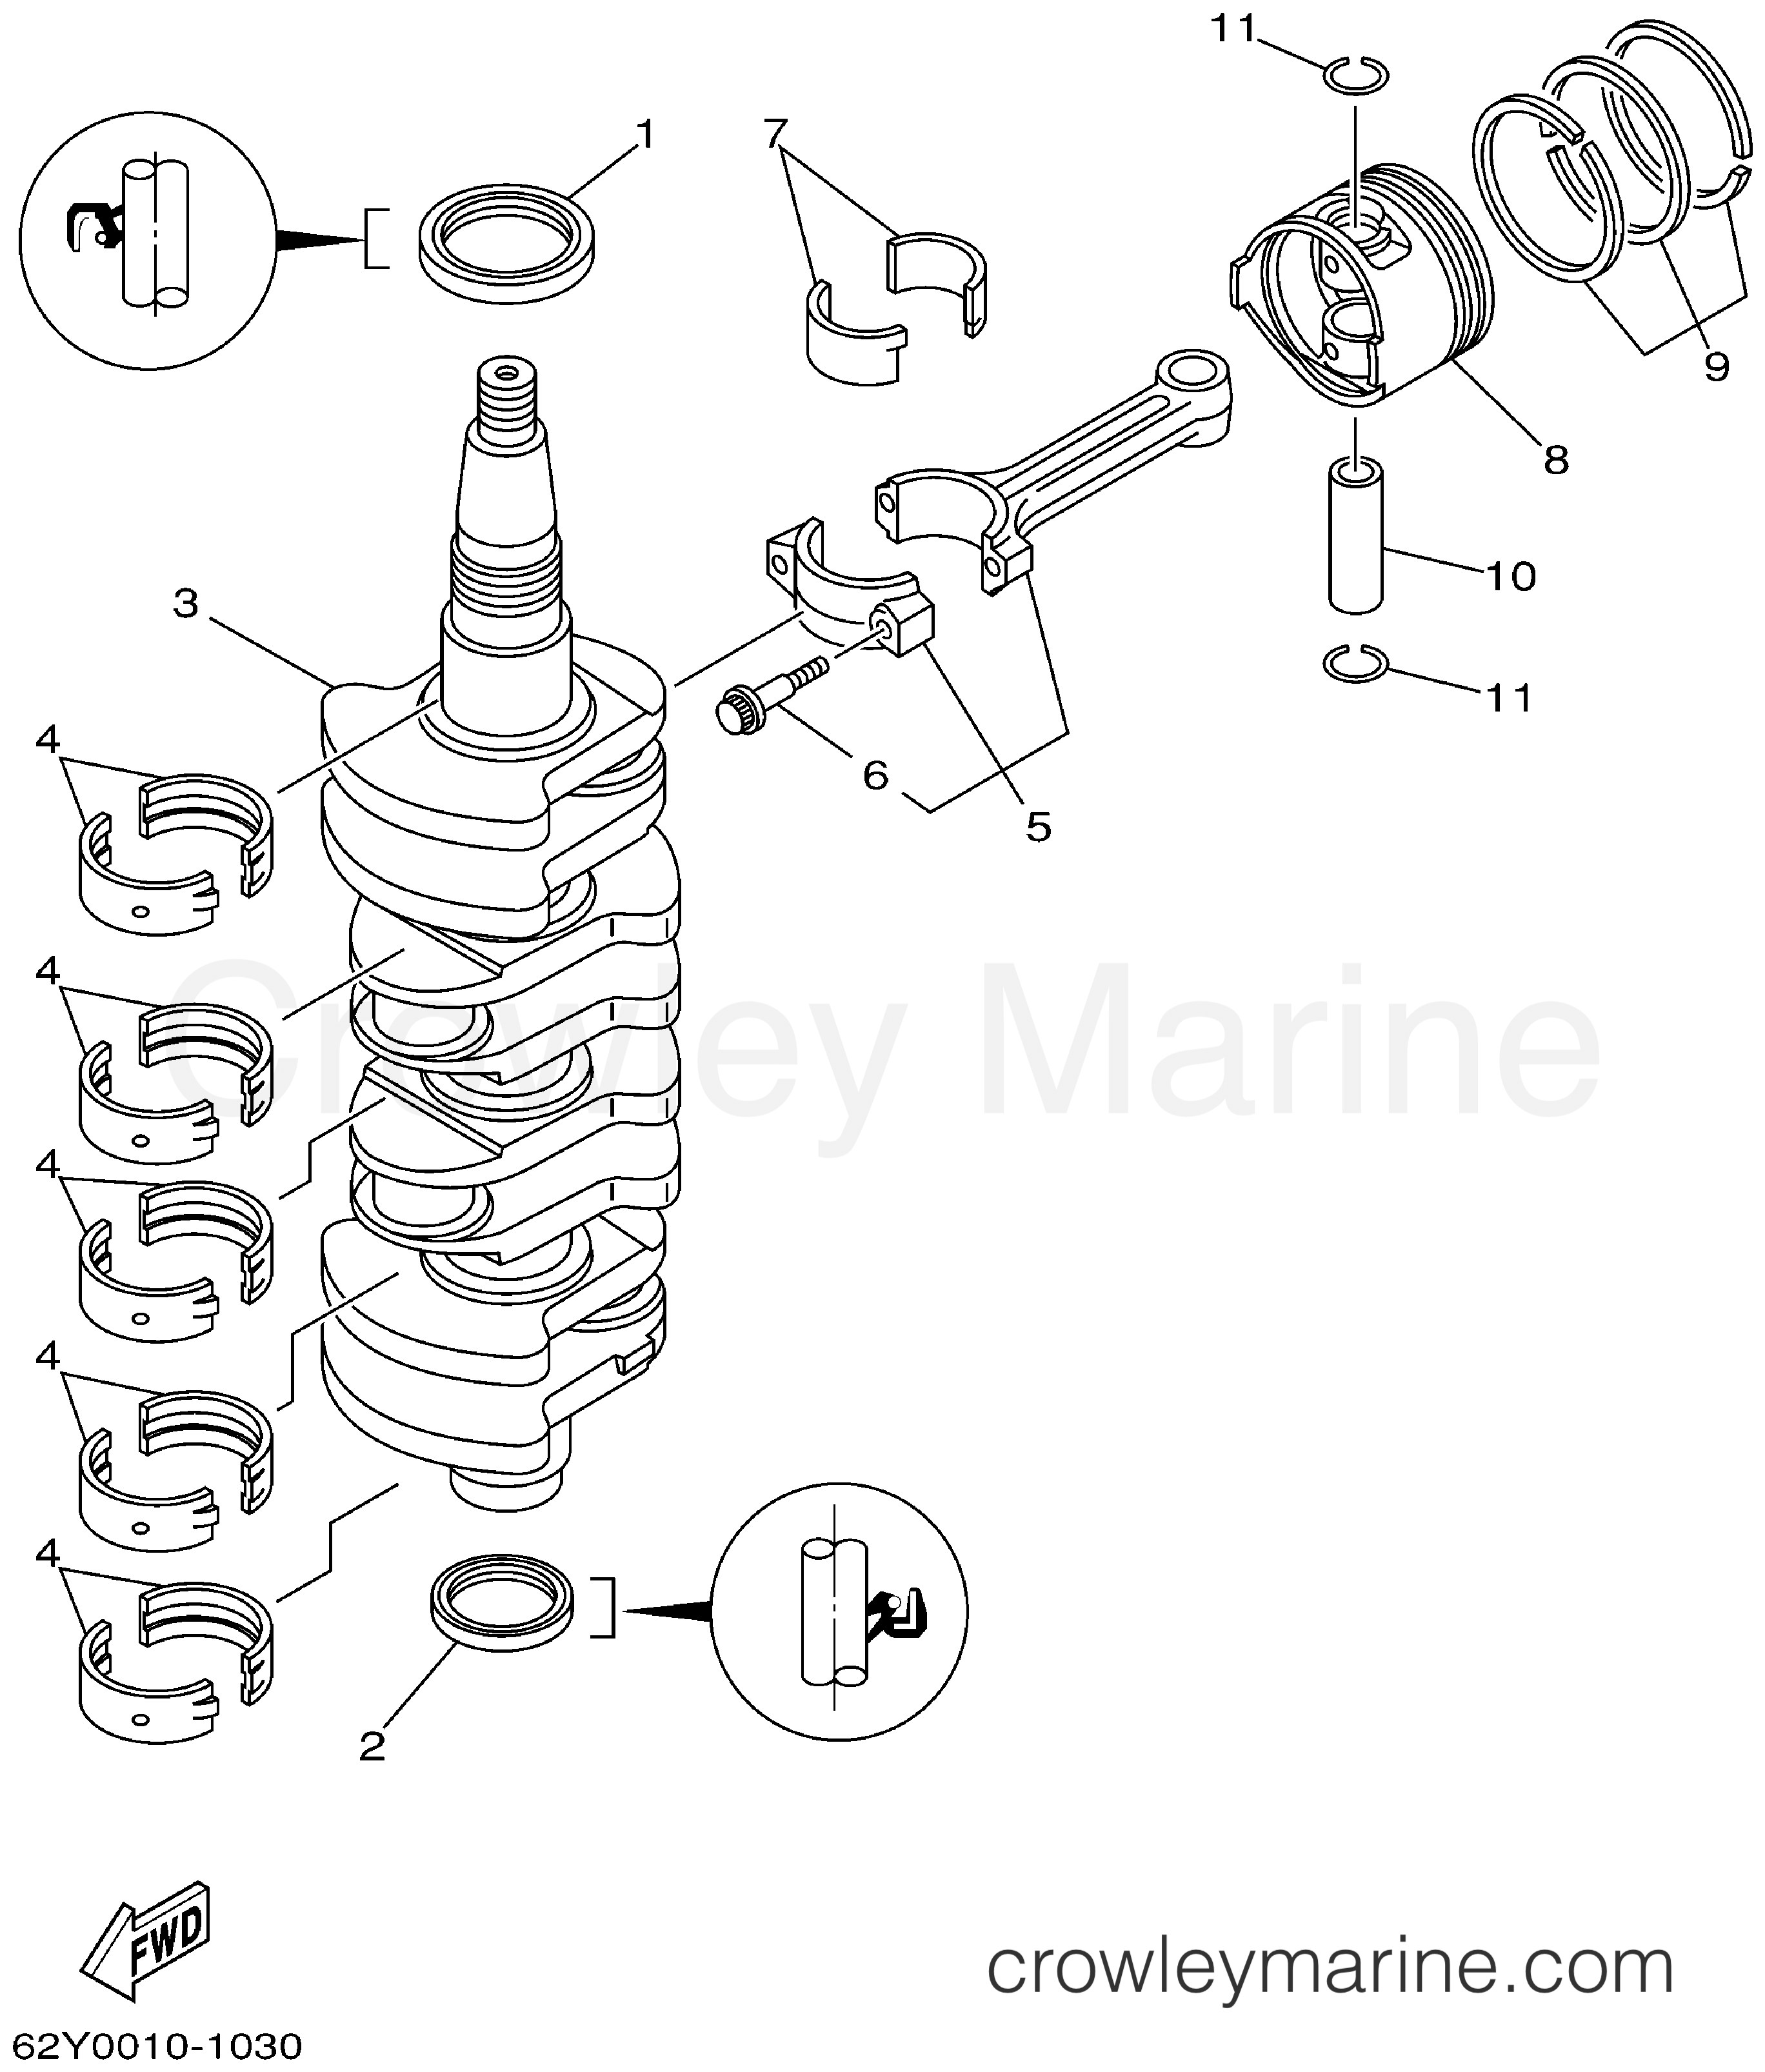 how to change damper seal on a 50 yamaha outboard